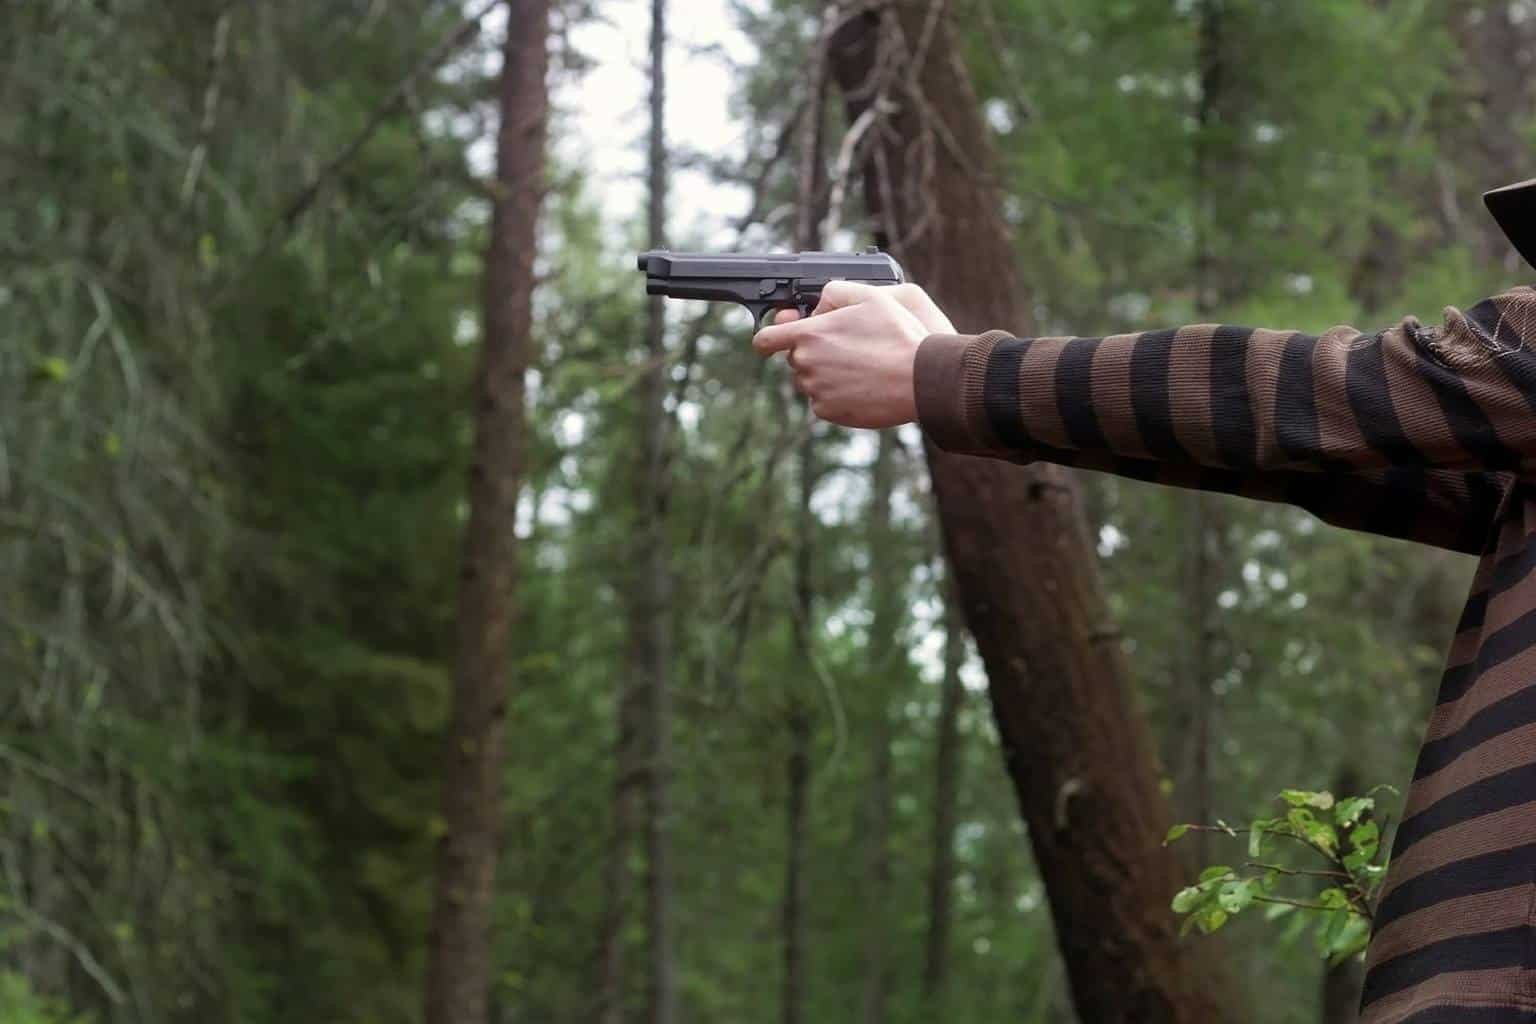 Person holding a gun in a forest